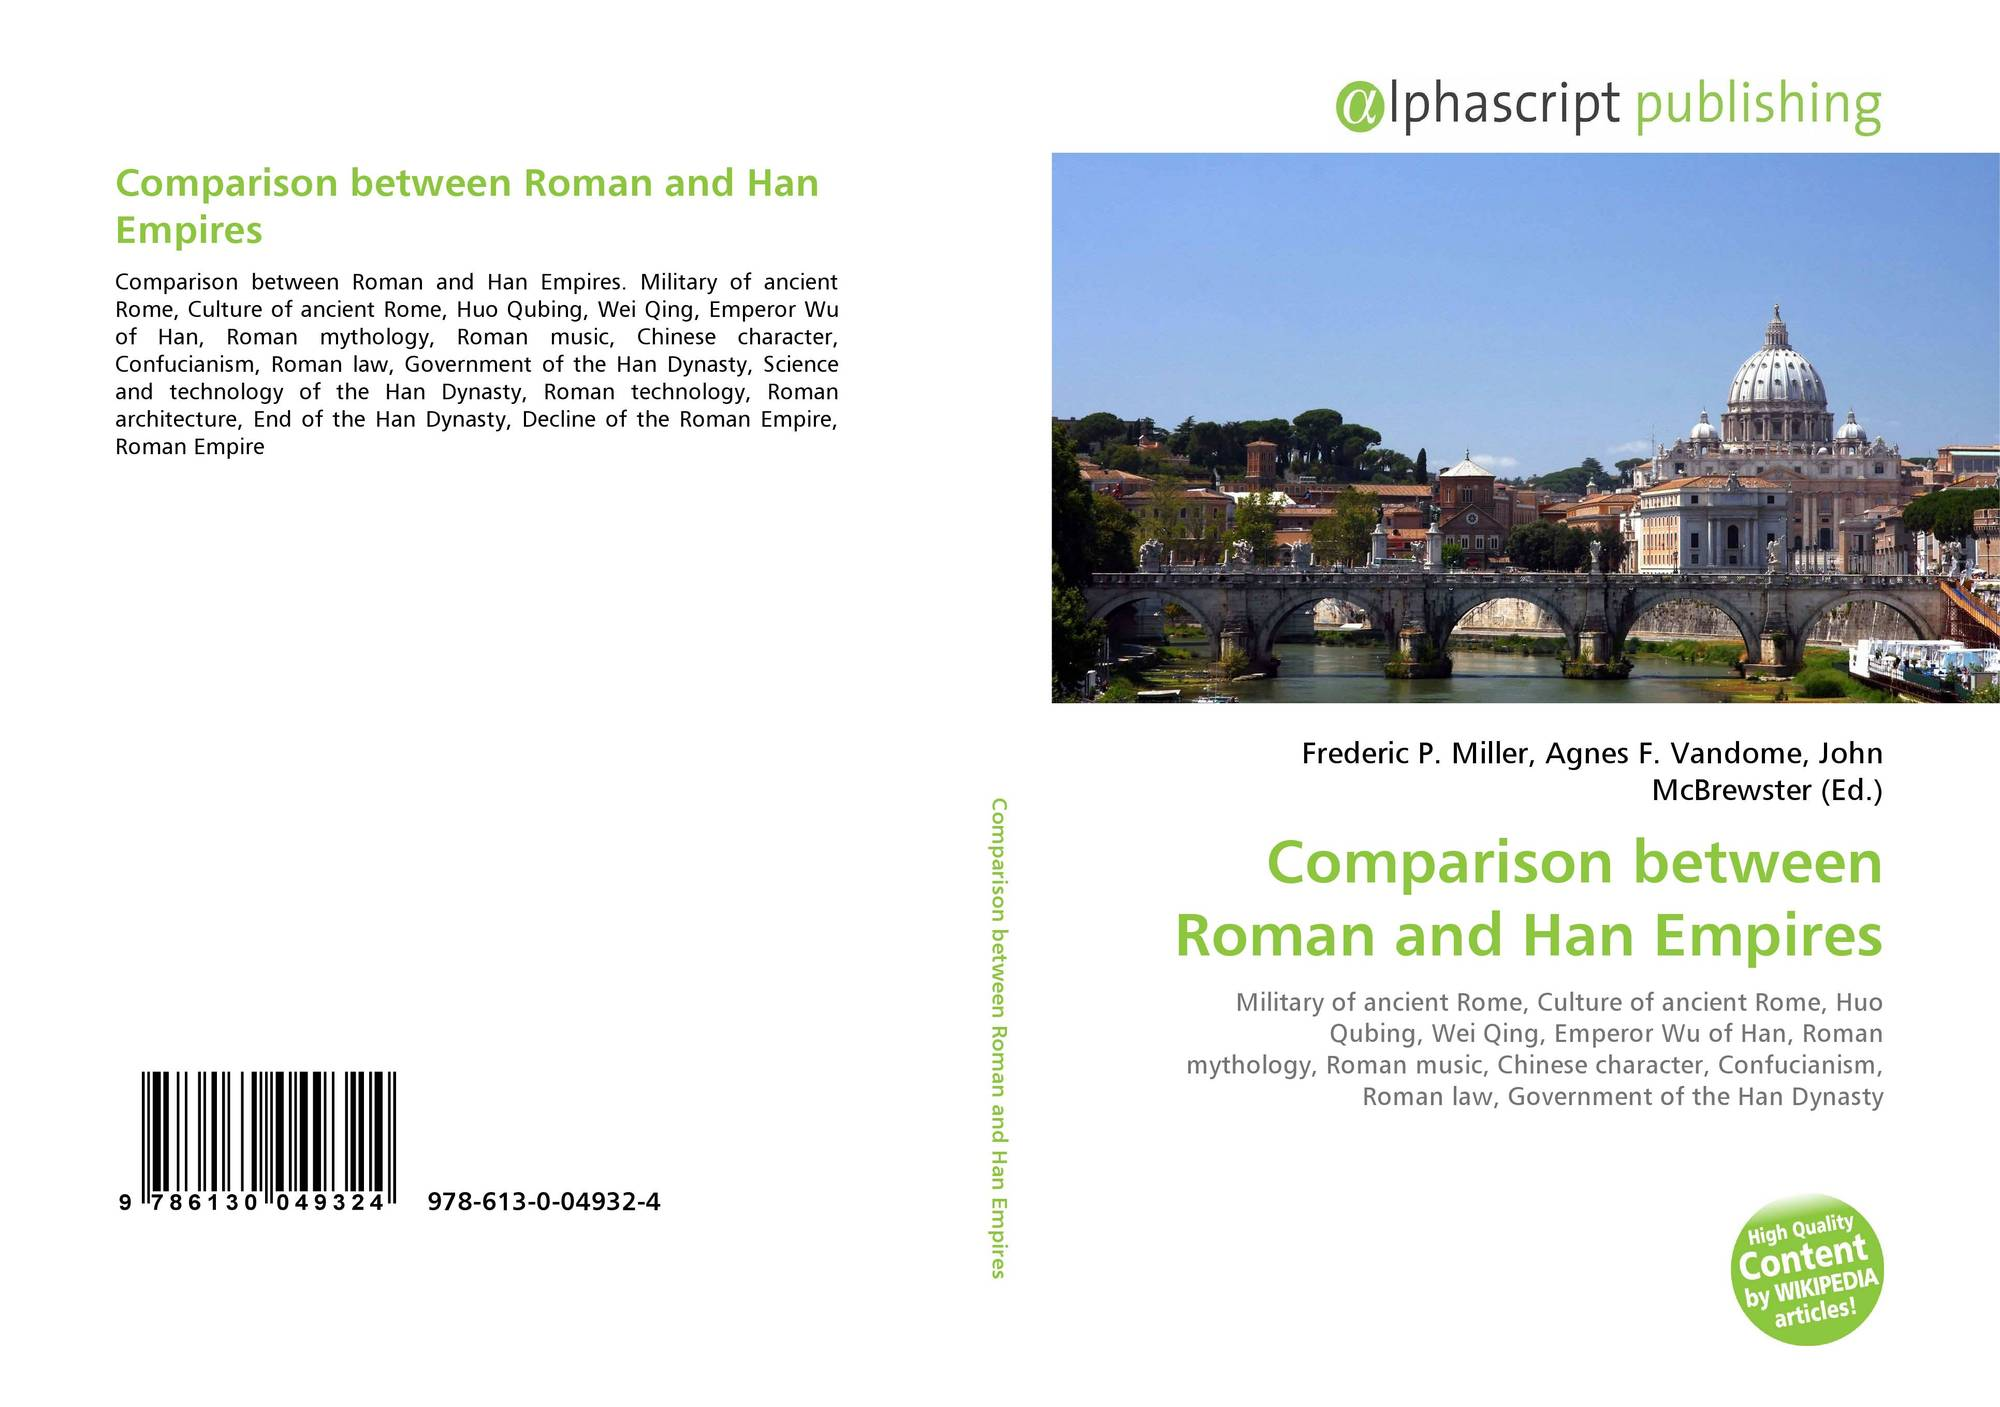 roman and han empire comparison and Both had a high degree of urbanization (up to 25% in the roman empire, i don't know numbers for han) and could support multiple cities with 500000 to 1mio inhabitants both roman and han were culturally defining for their respective region.